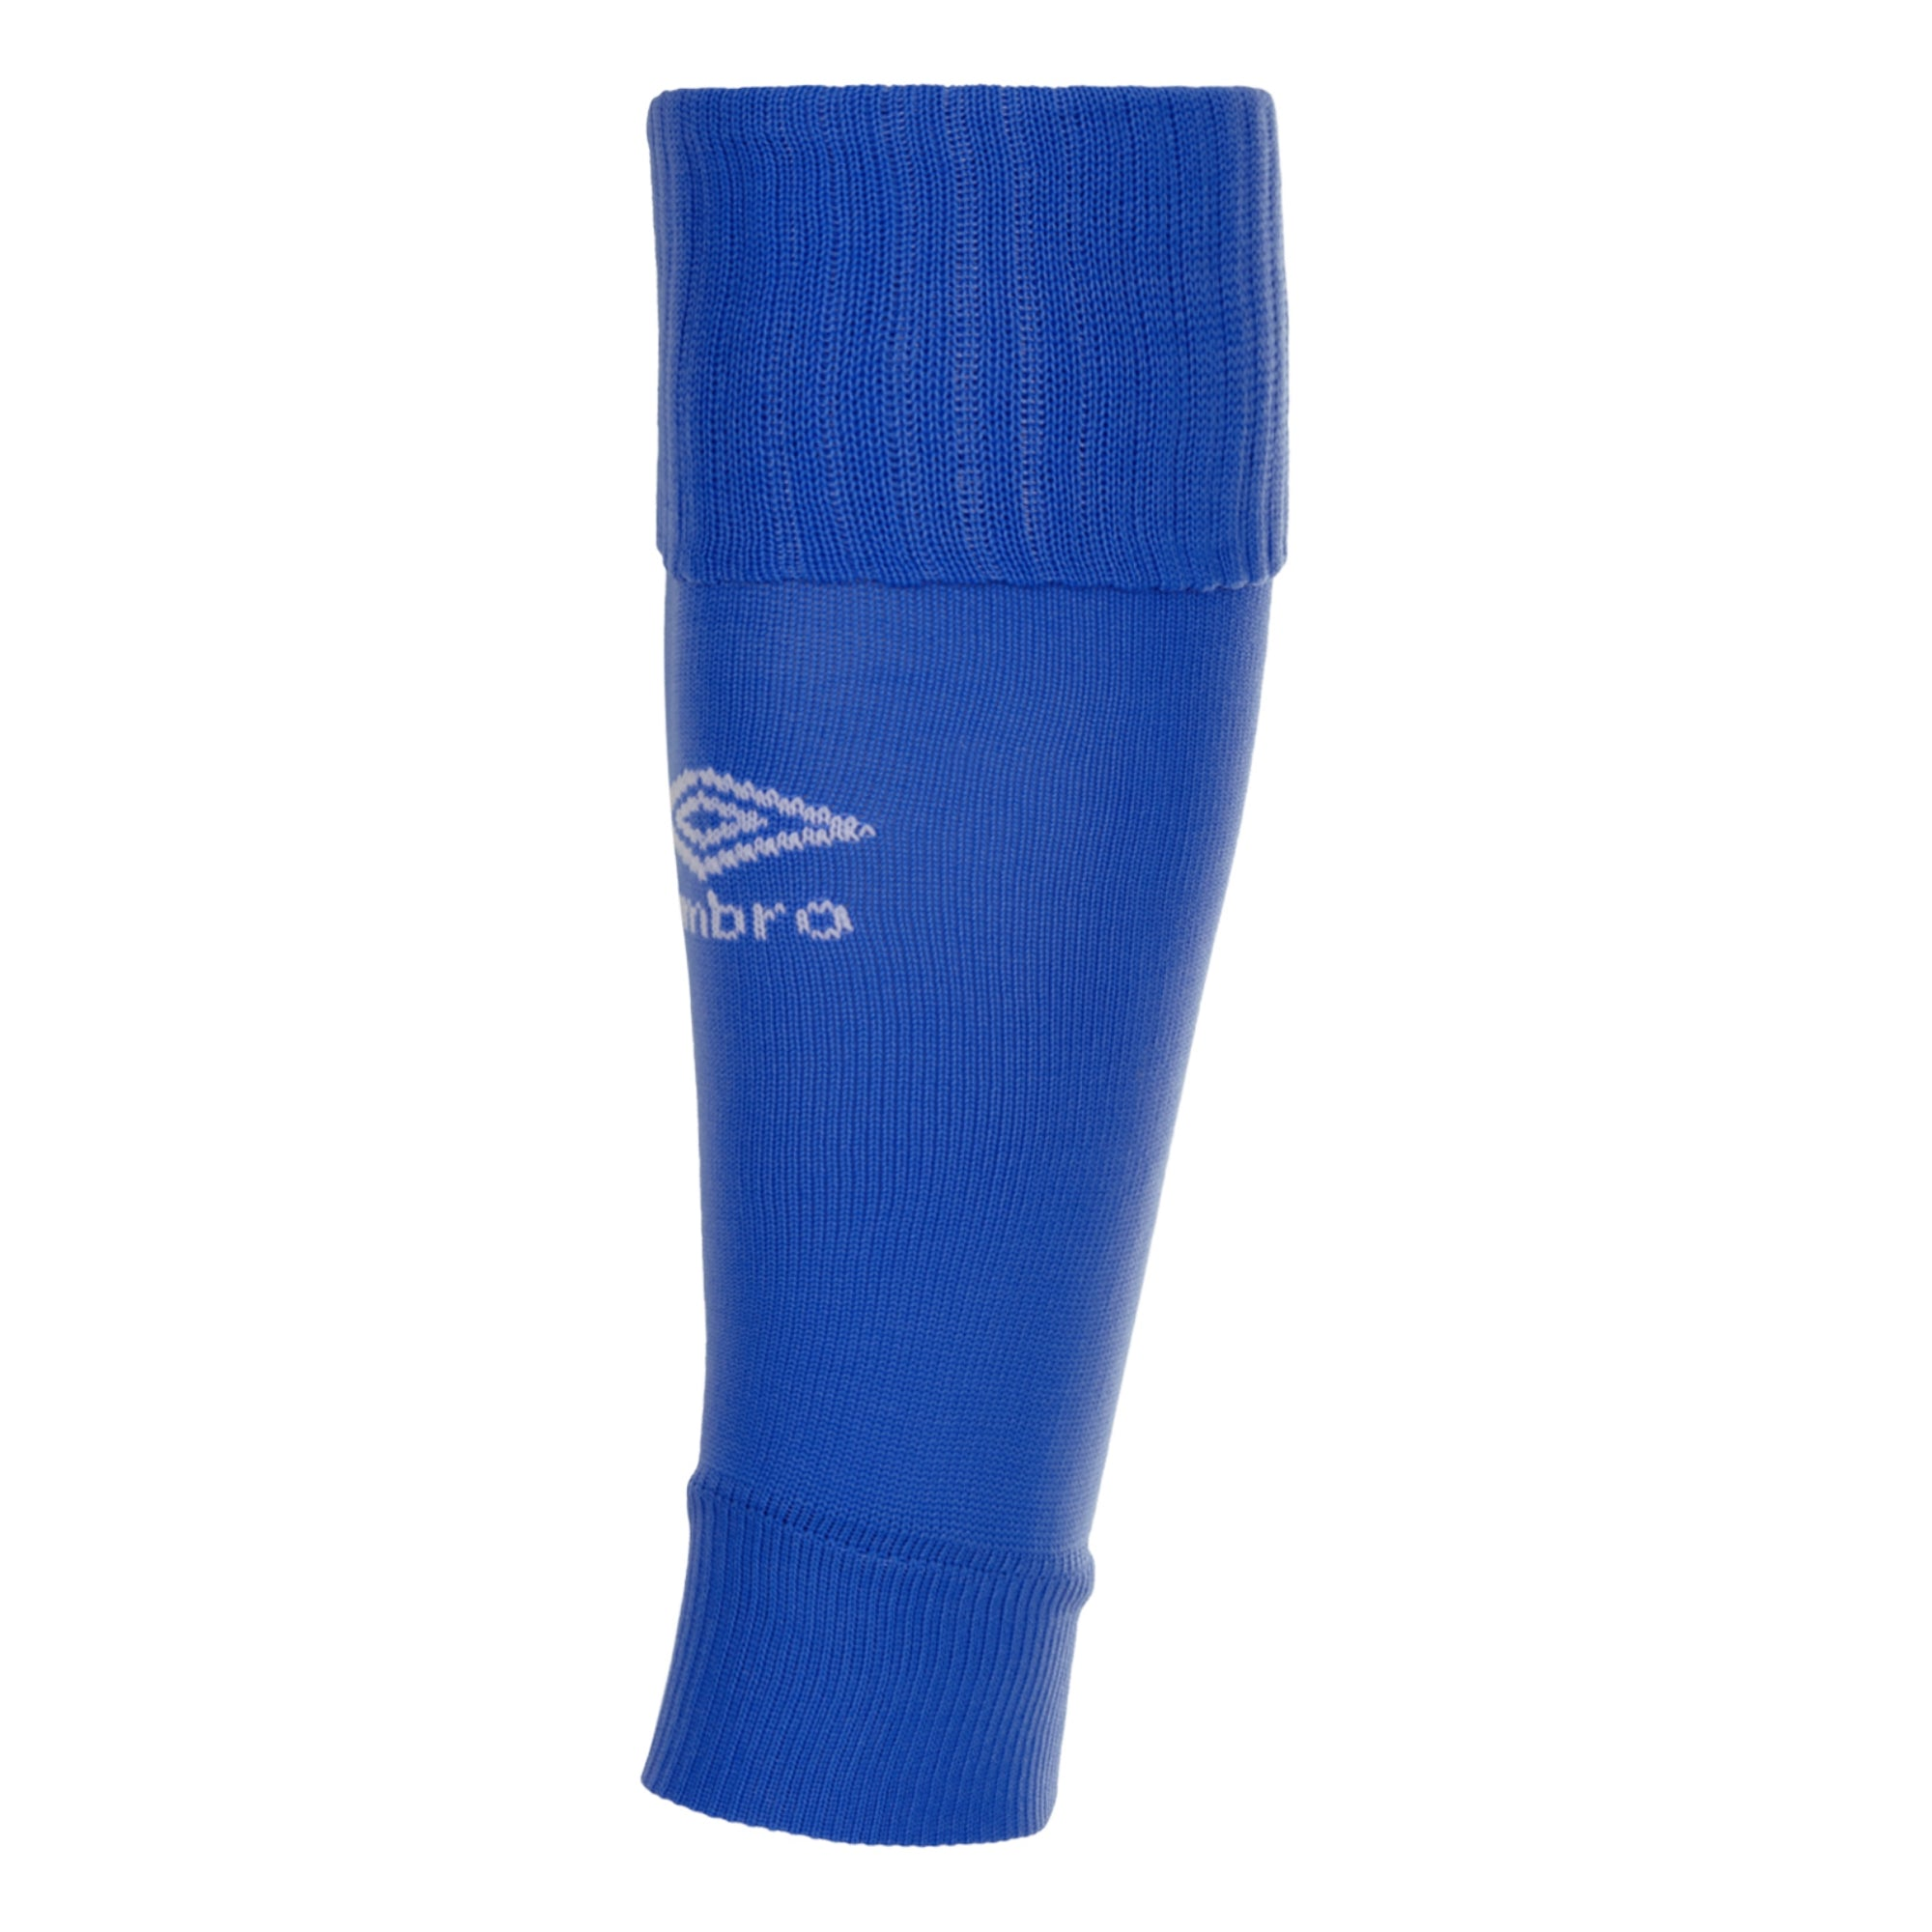 Umbro Sock Leg - Royal